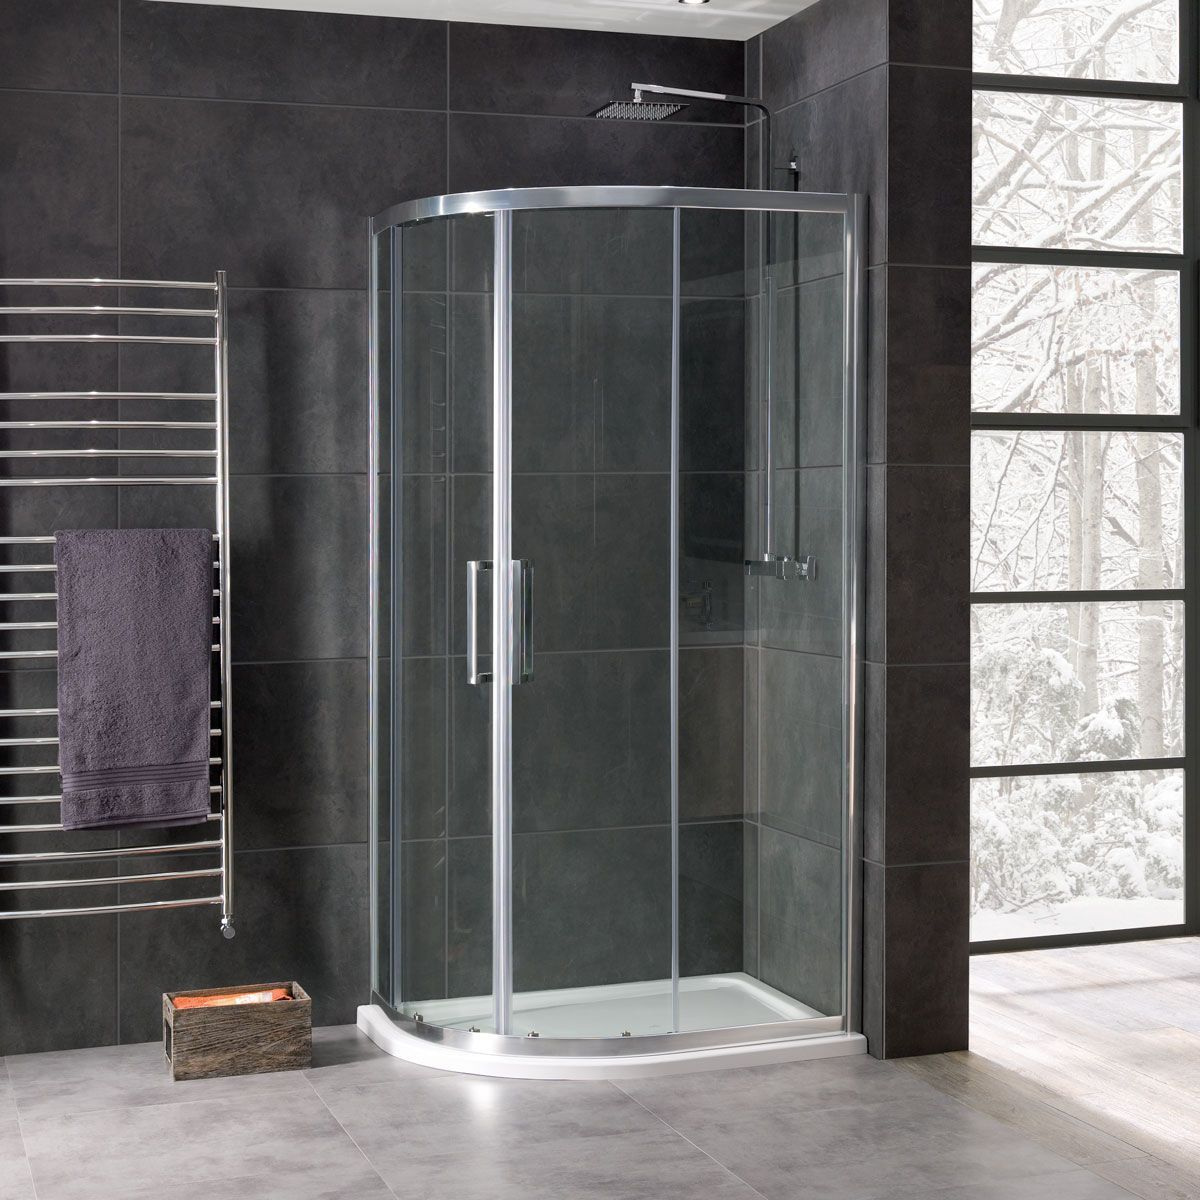 Coral 8mm Offset Quadrant Shower Enclosure 1200 X 900mm Shower Enclosure Quadrant Shower Quadrant Shower Enclosures